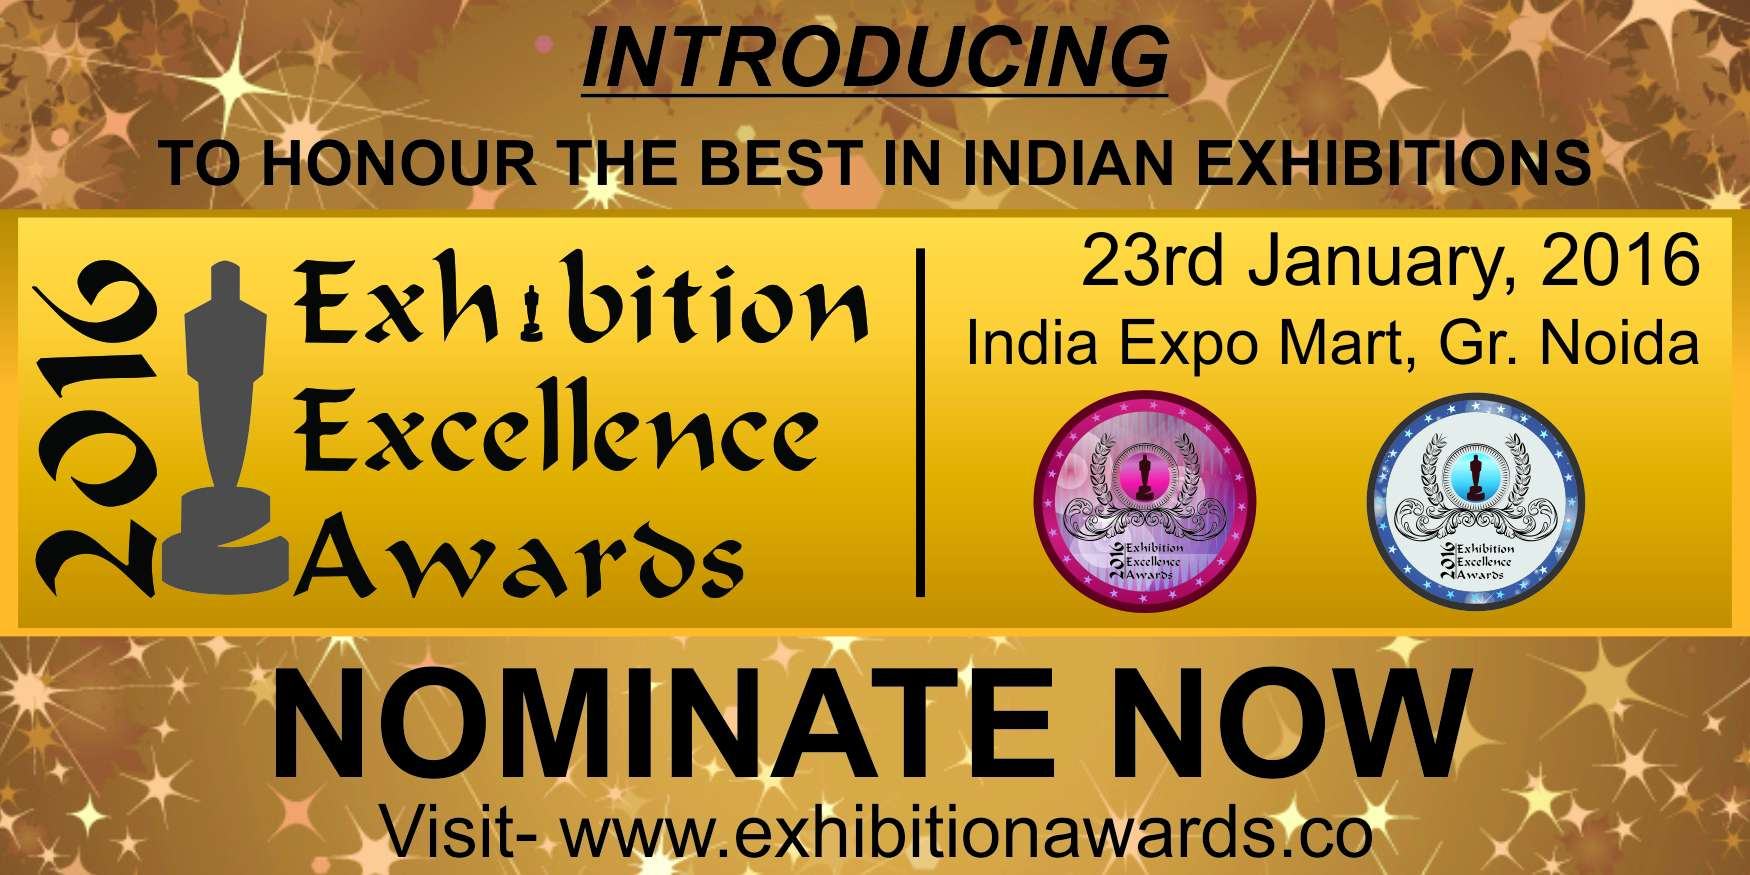 Book Online Tickets for Exhibition Excellence Awards, Noida. 